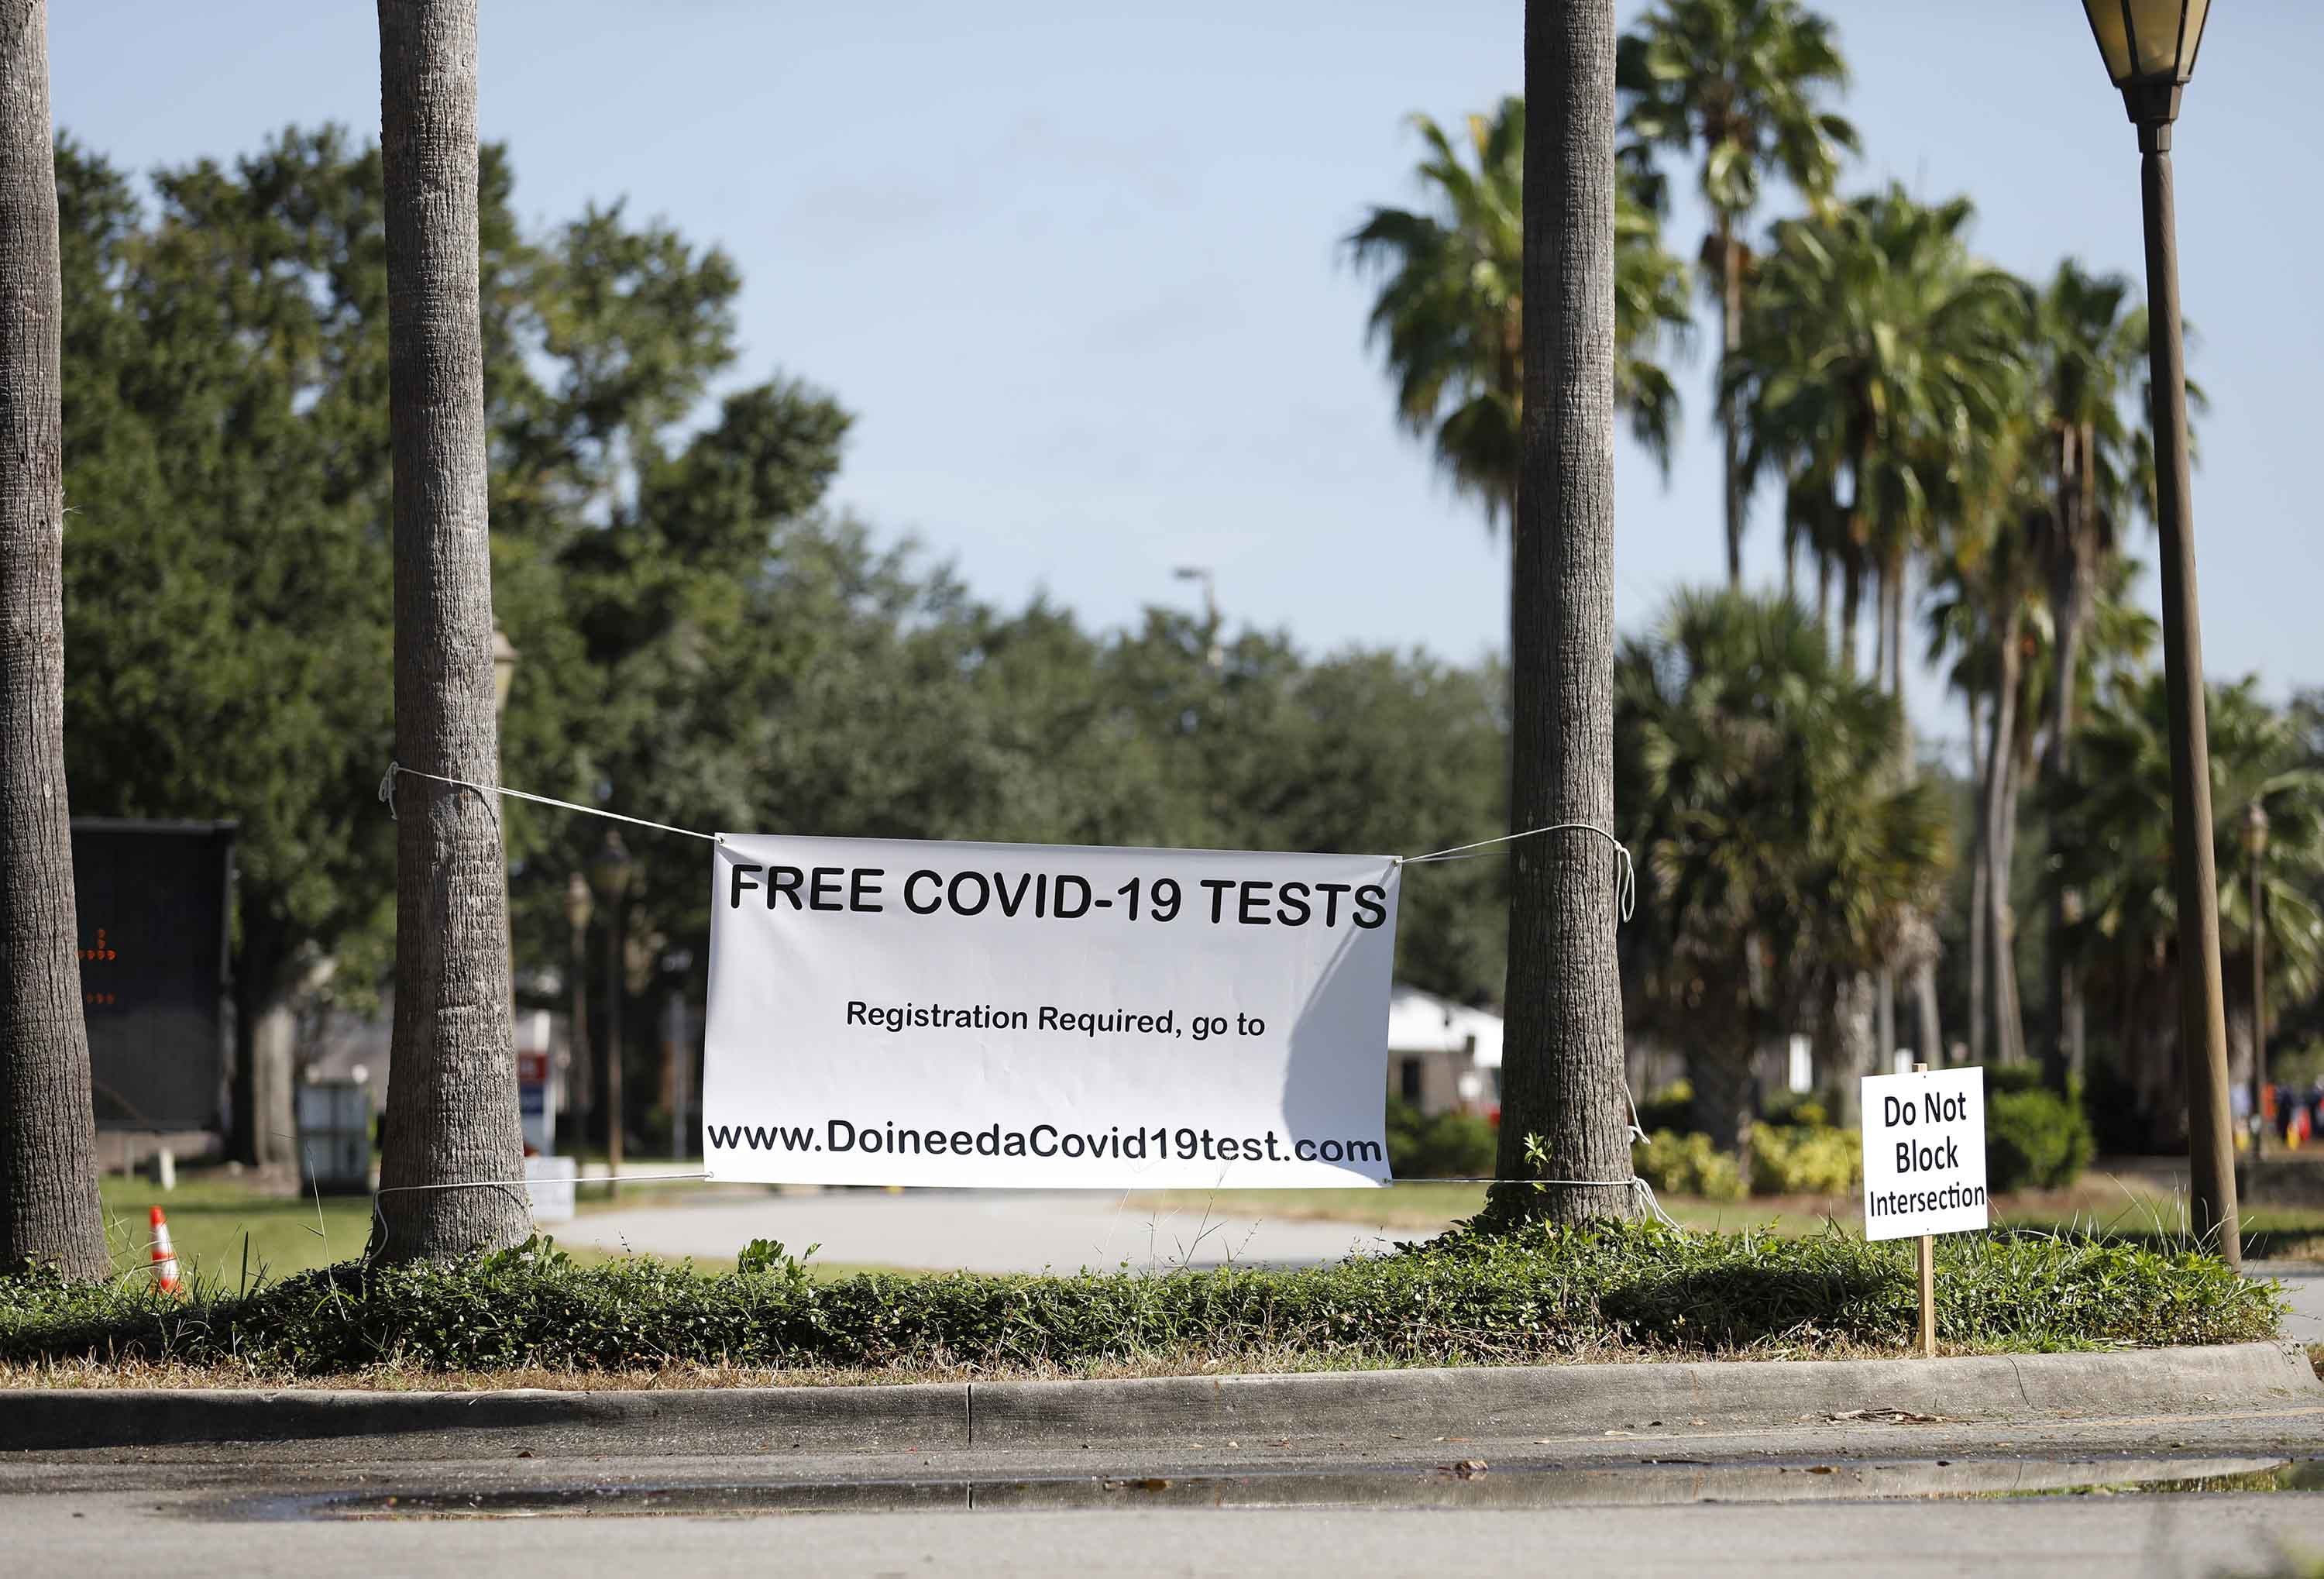 A Covid-19 testing site is pictured at the Maingate Complex at Walt Disney World in Kissimmee, Florida, on August 14.